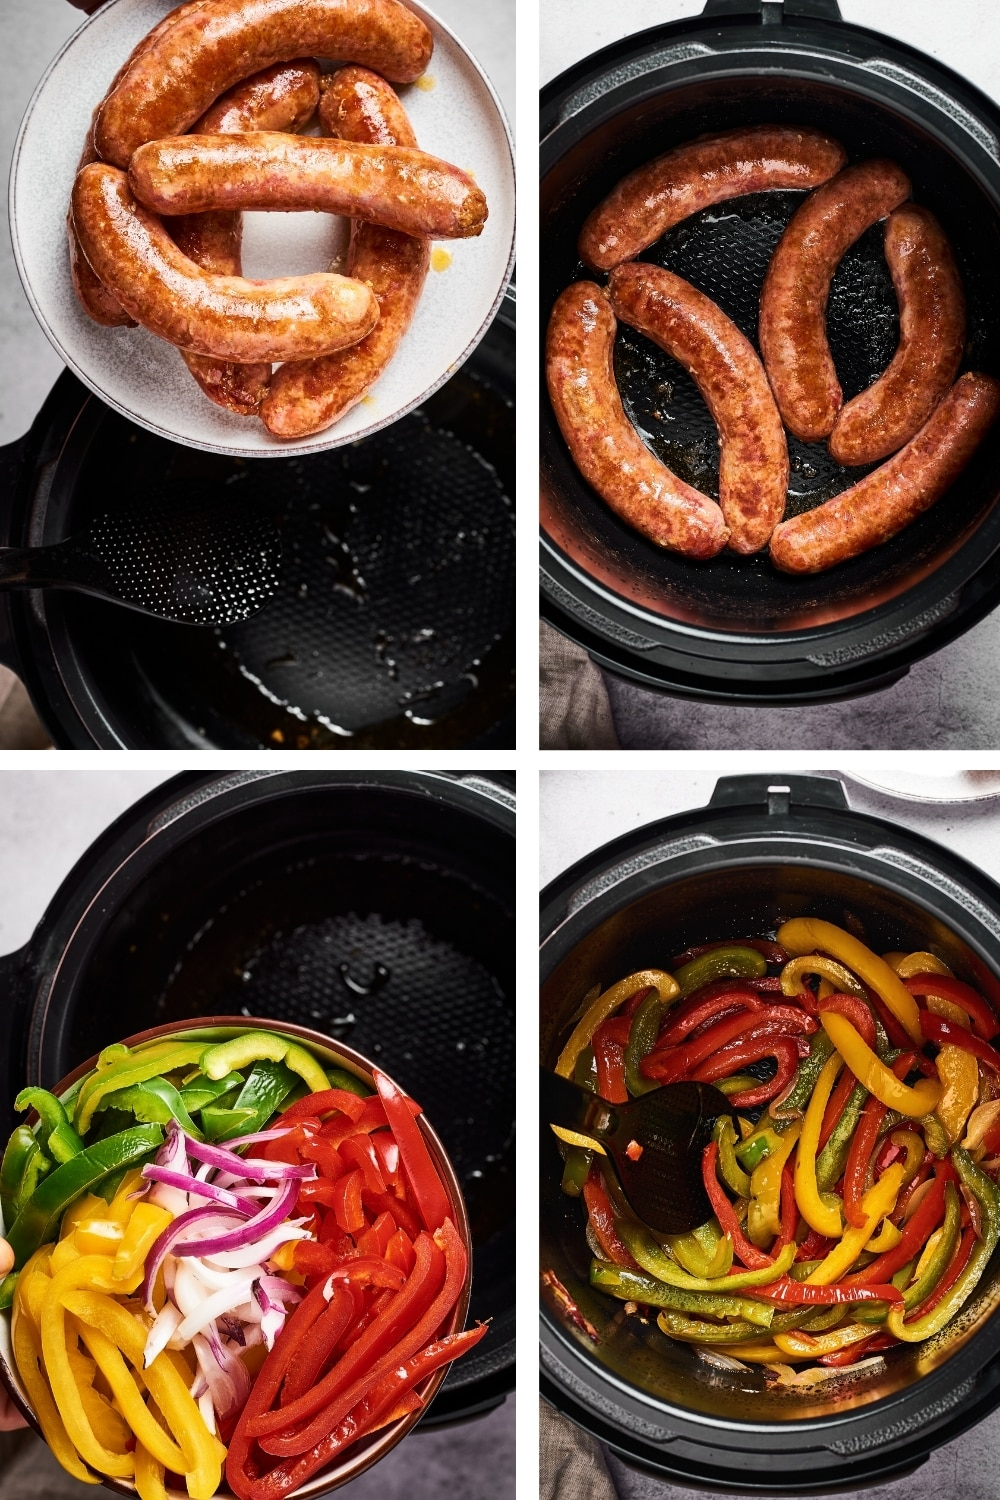 A four-way split picture: the top left is a plate with Italian sausage on it hovering over an Instant pot. Top right is cooked Italian sausage in an instant pot. The bottom left is a plate with red, green, and yellow peppers and onions hovering over an instant pot. In the bottom right is an instant pot filled with browned peppers and onions.